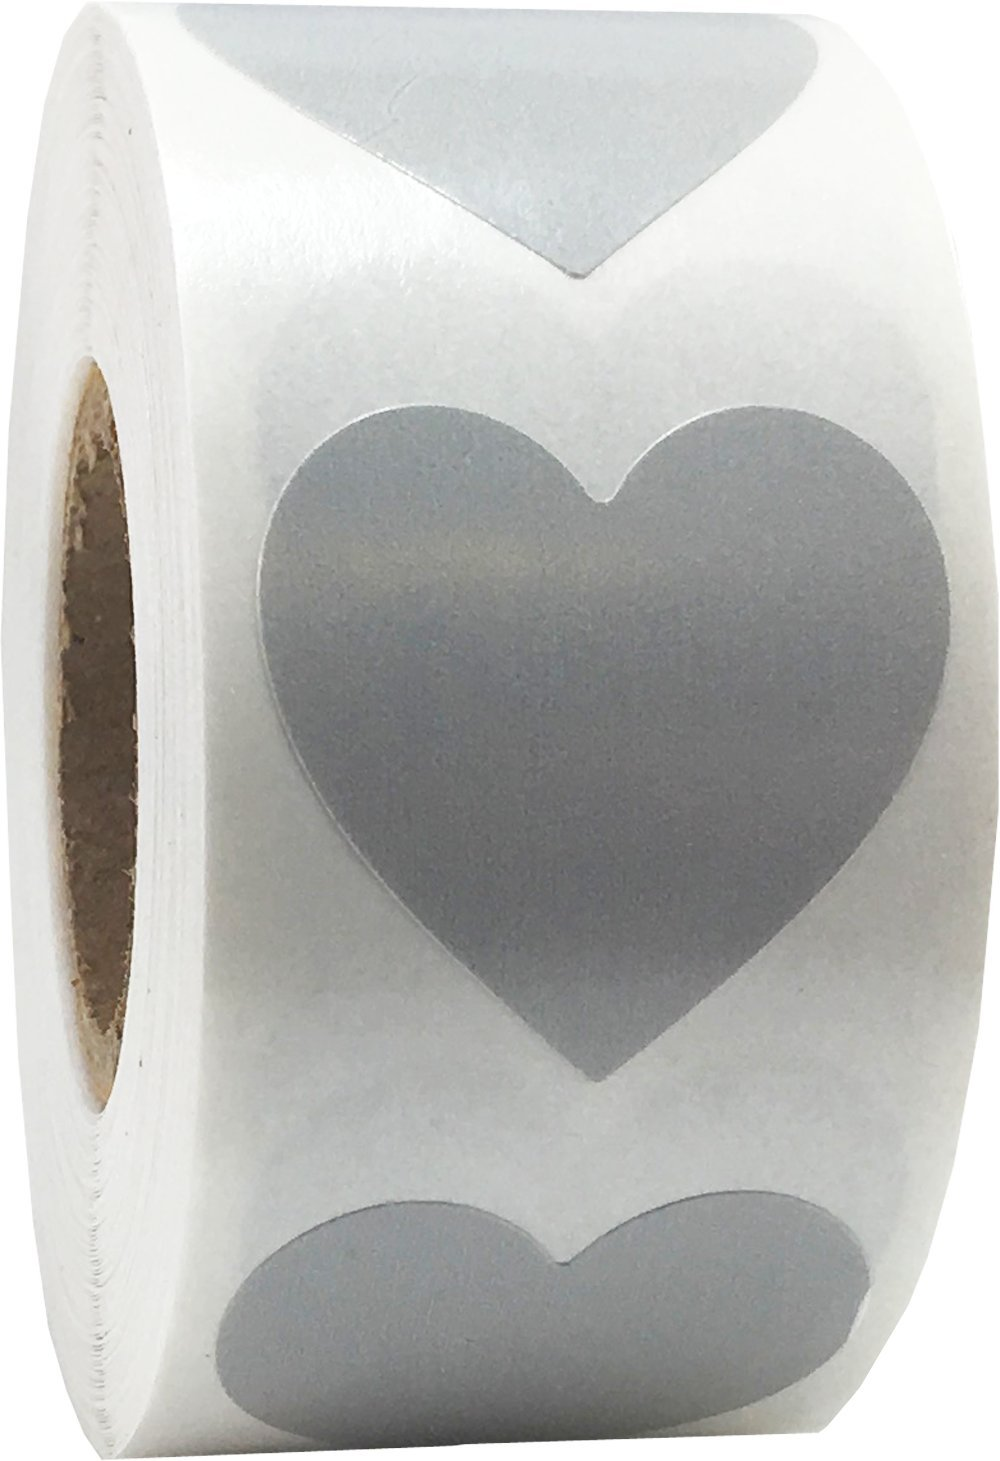 Grey Heart Stickers Valentine's Day Crafting Scrapbooking 1 Inch 500 Adhesive Stickers